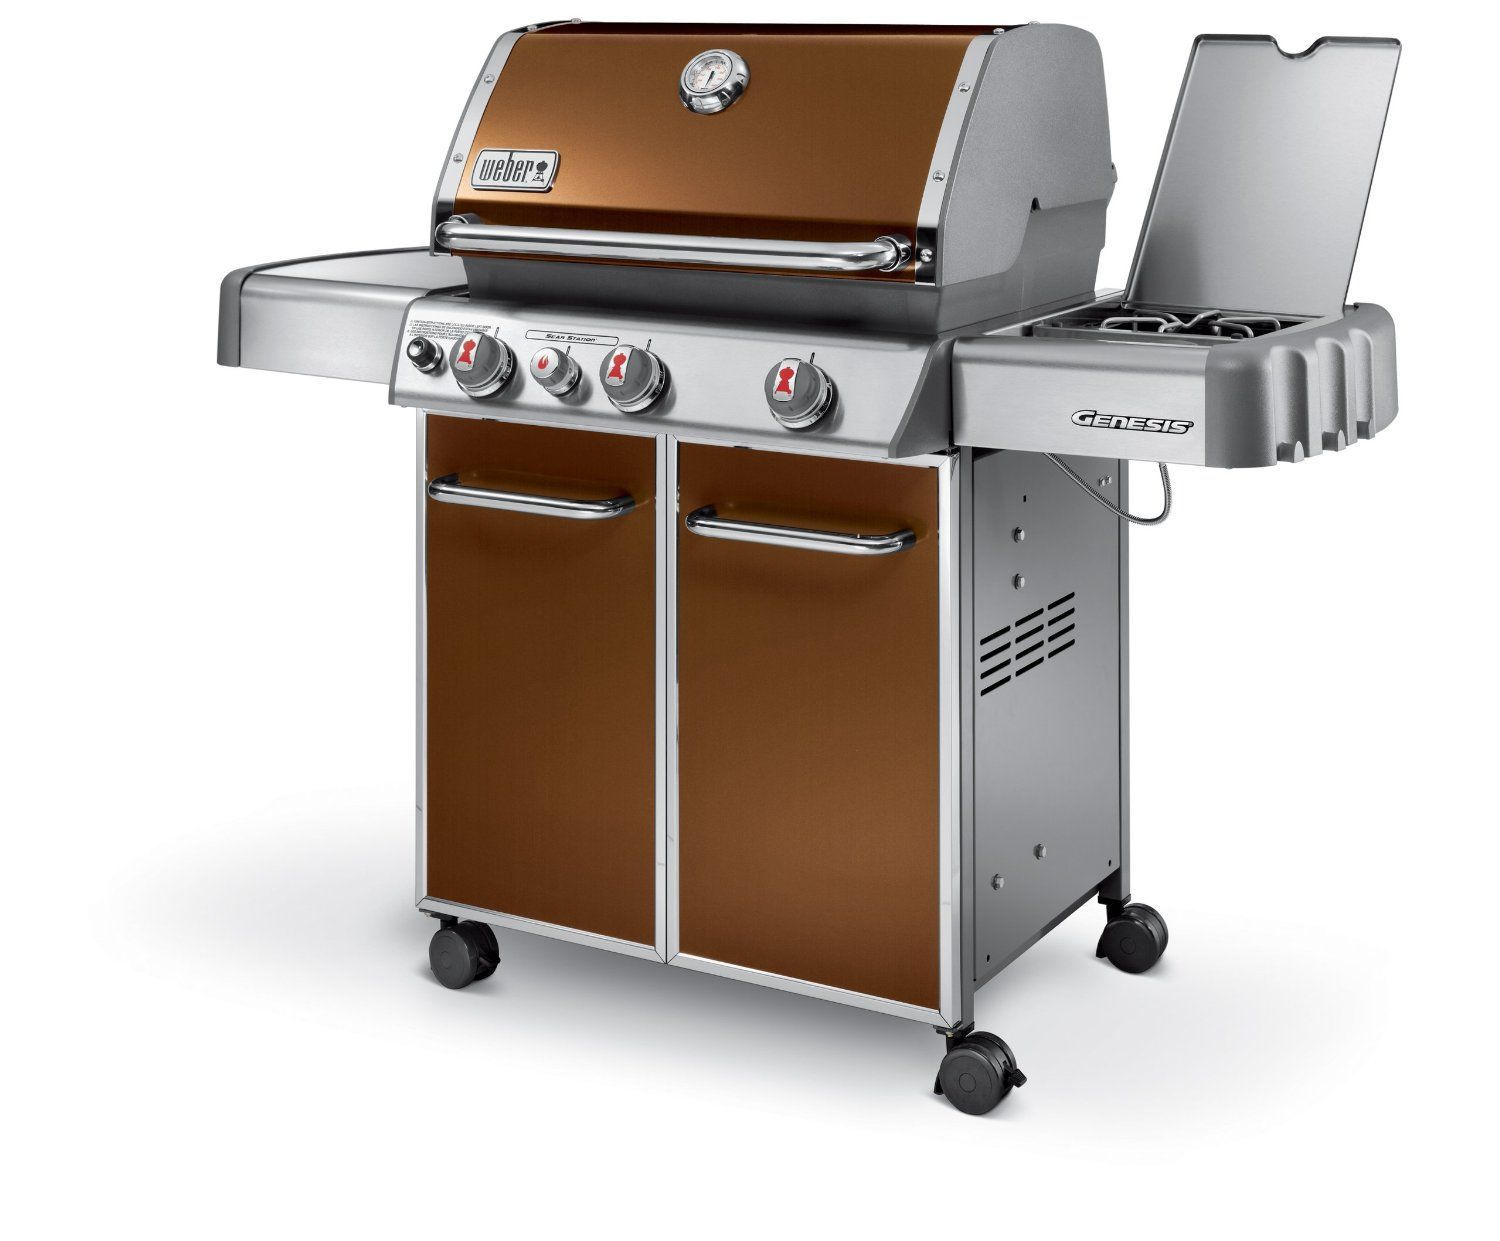 Weber E330 Genesis E 330 Copper 6532001 60 Freestanding Gas Grill With 637 Sq In Cooking Area 3 Stainless Ste Gas Grill Reviews Gas Grill Best Gas Grills